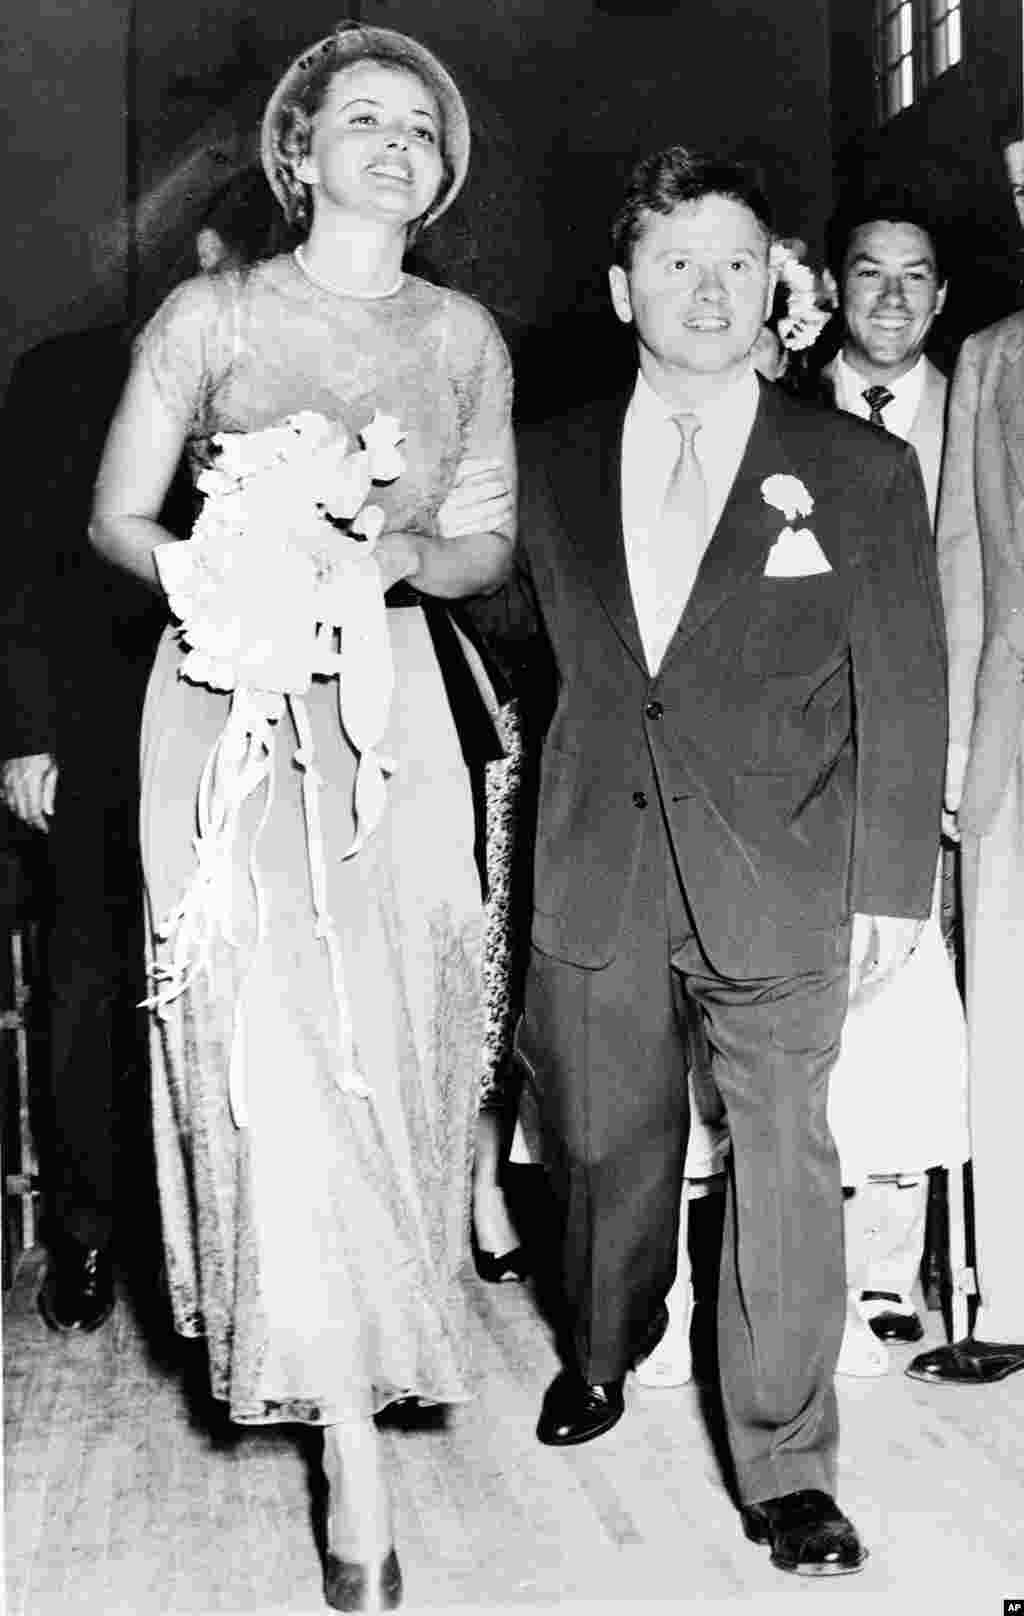 Actor Mickey Rooney and his bride, actress Martha Vickers, smile happily as they walk down the aisle of a church shortly after their wedding ceremony, in North Hollywood, California, June 3, 1949.